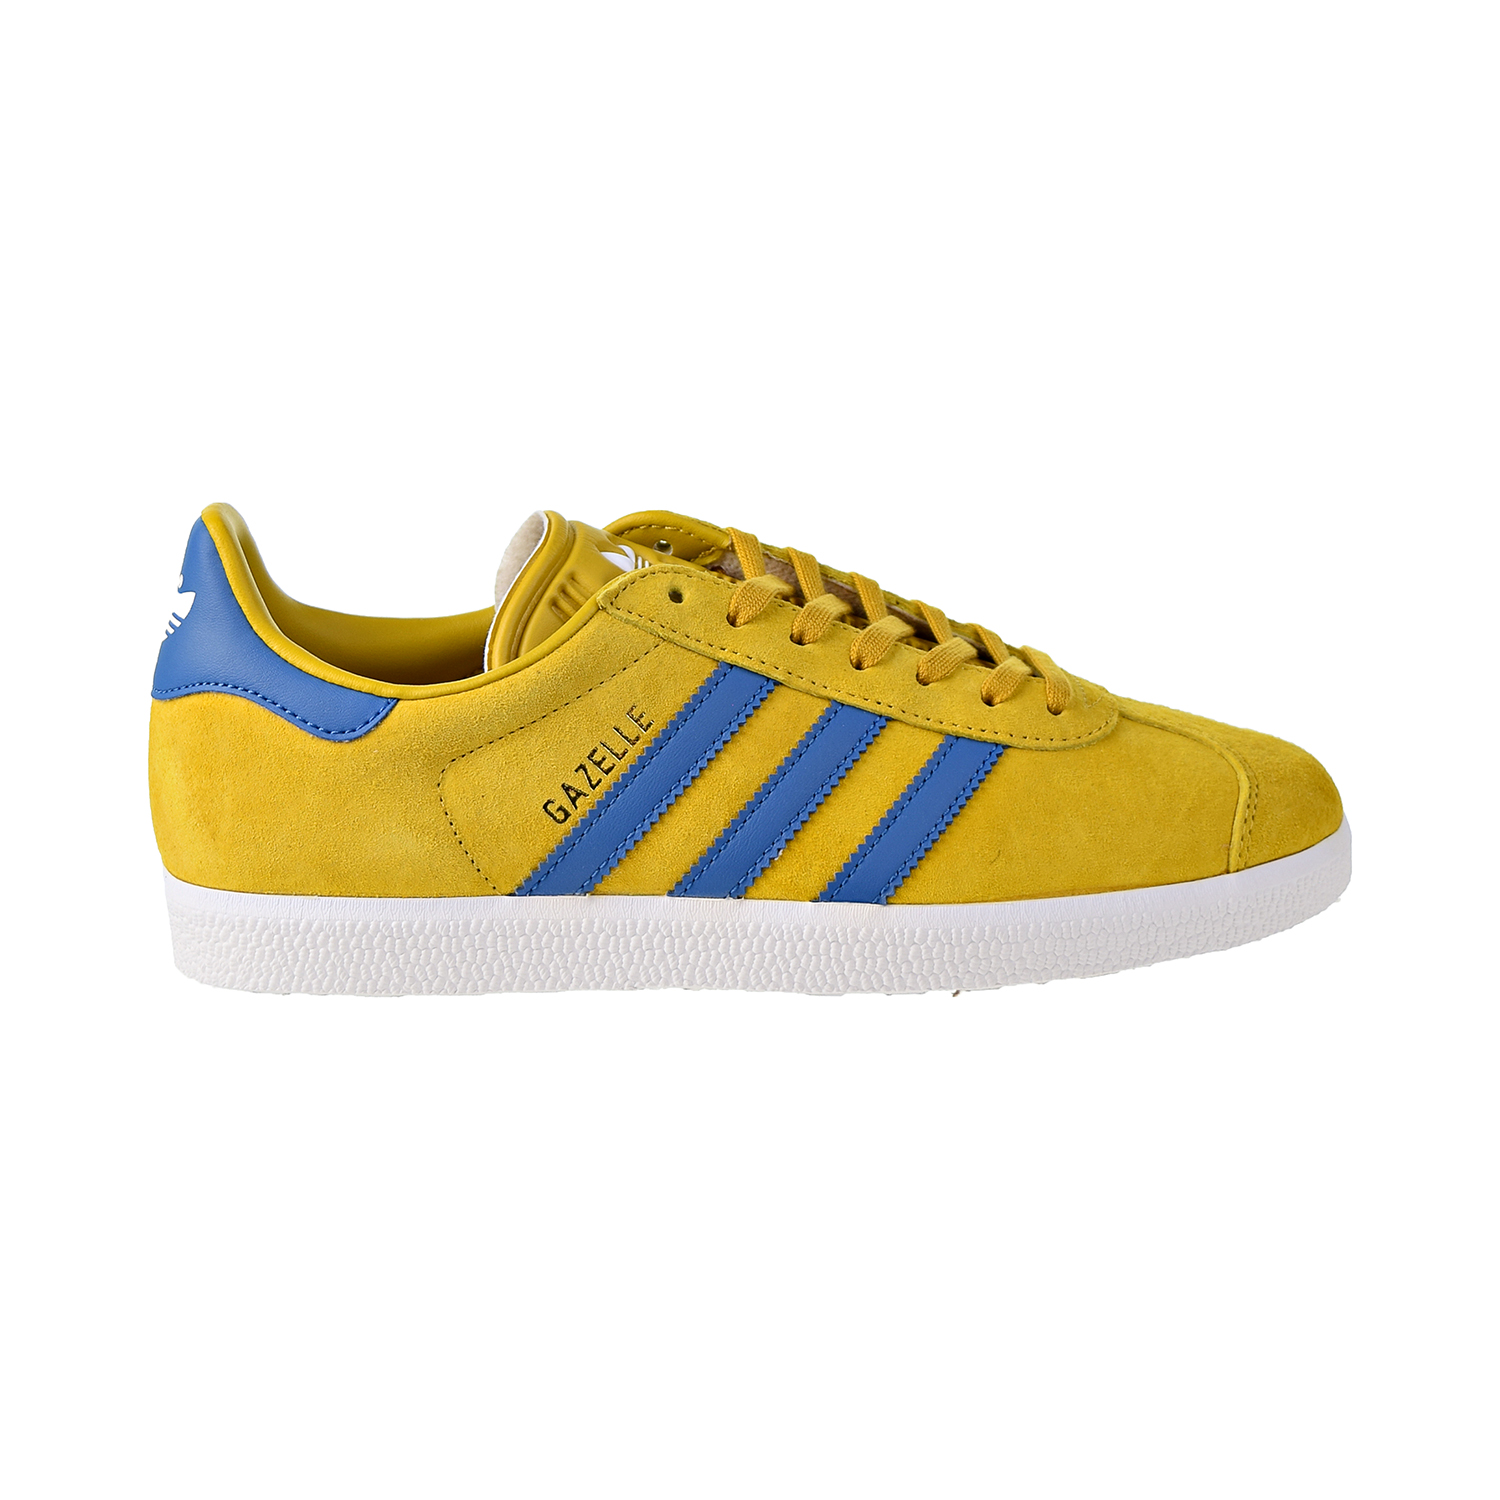 Details about Adidas Gazelle Mens Shoes ST Nomad Yellow Core Blue Footwear White BB5258